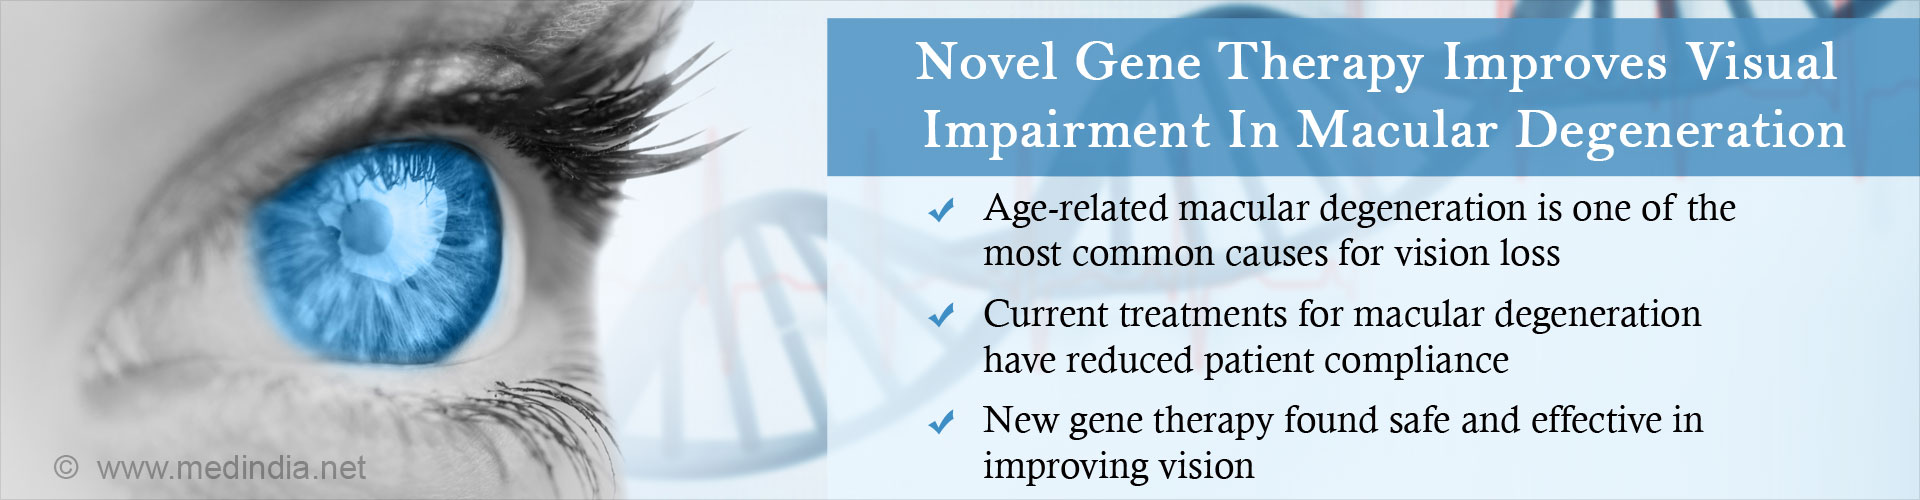 Novel gene therapy improves visual impairment in macular degeneration